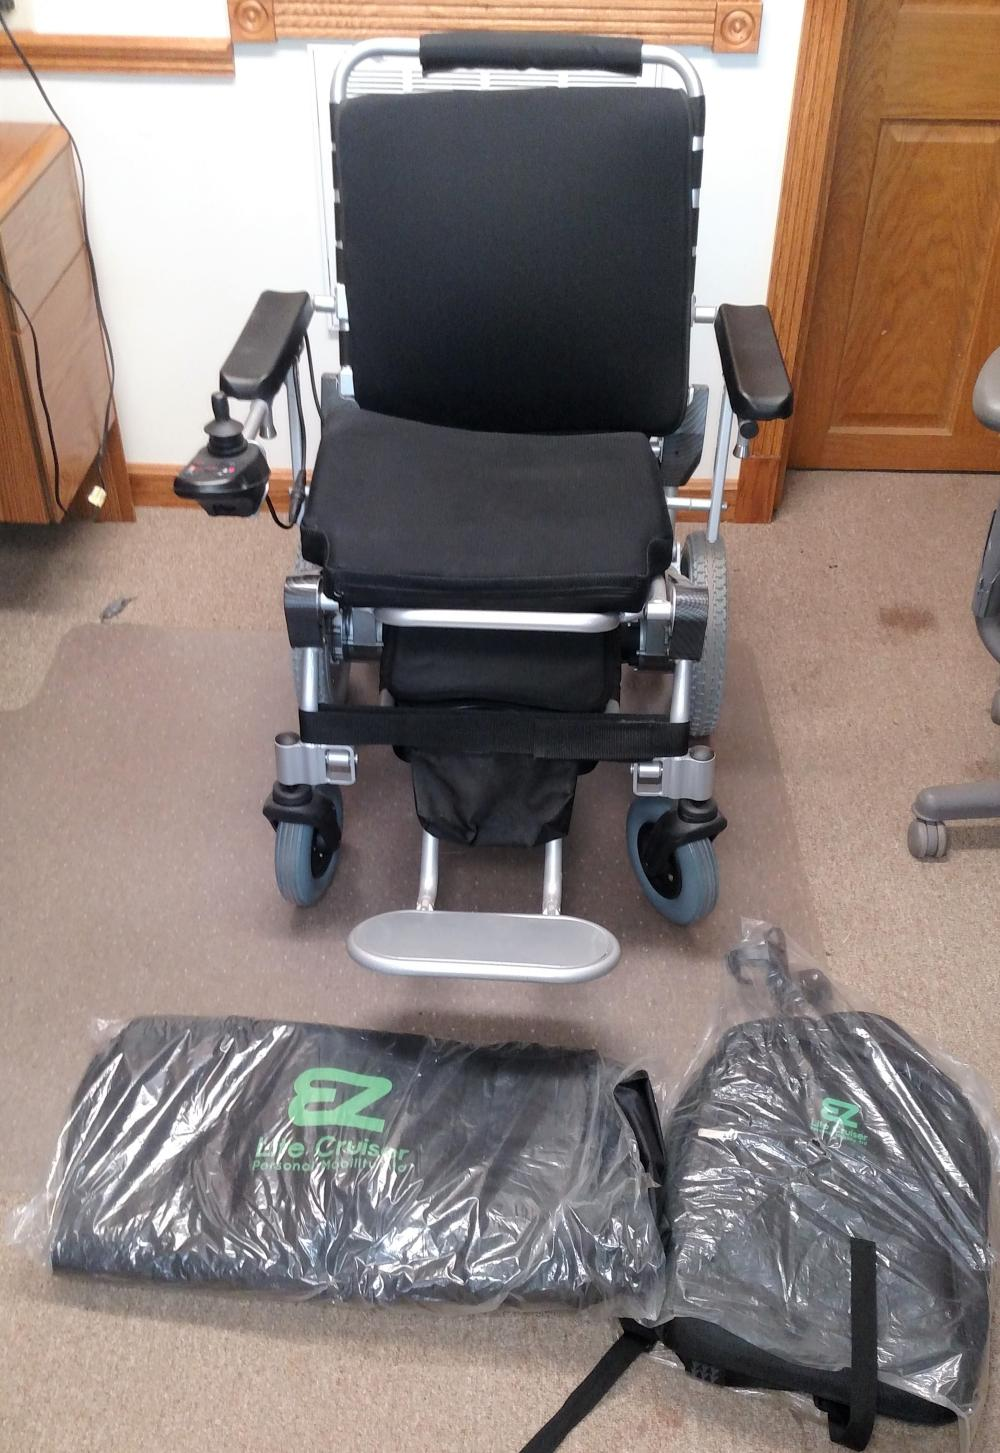 lite cruiser motorized chair-- like new-- w/bags and charger